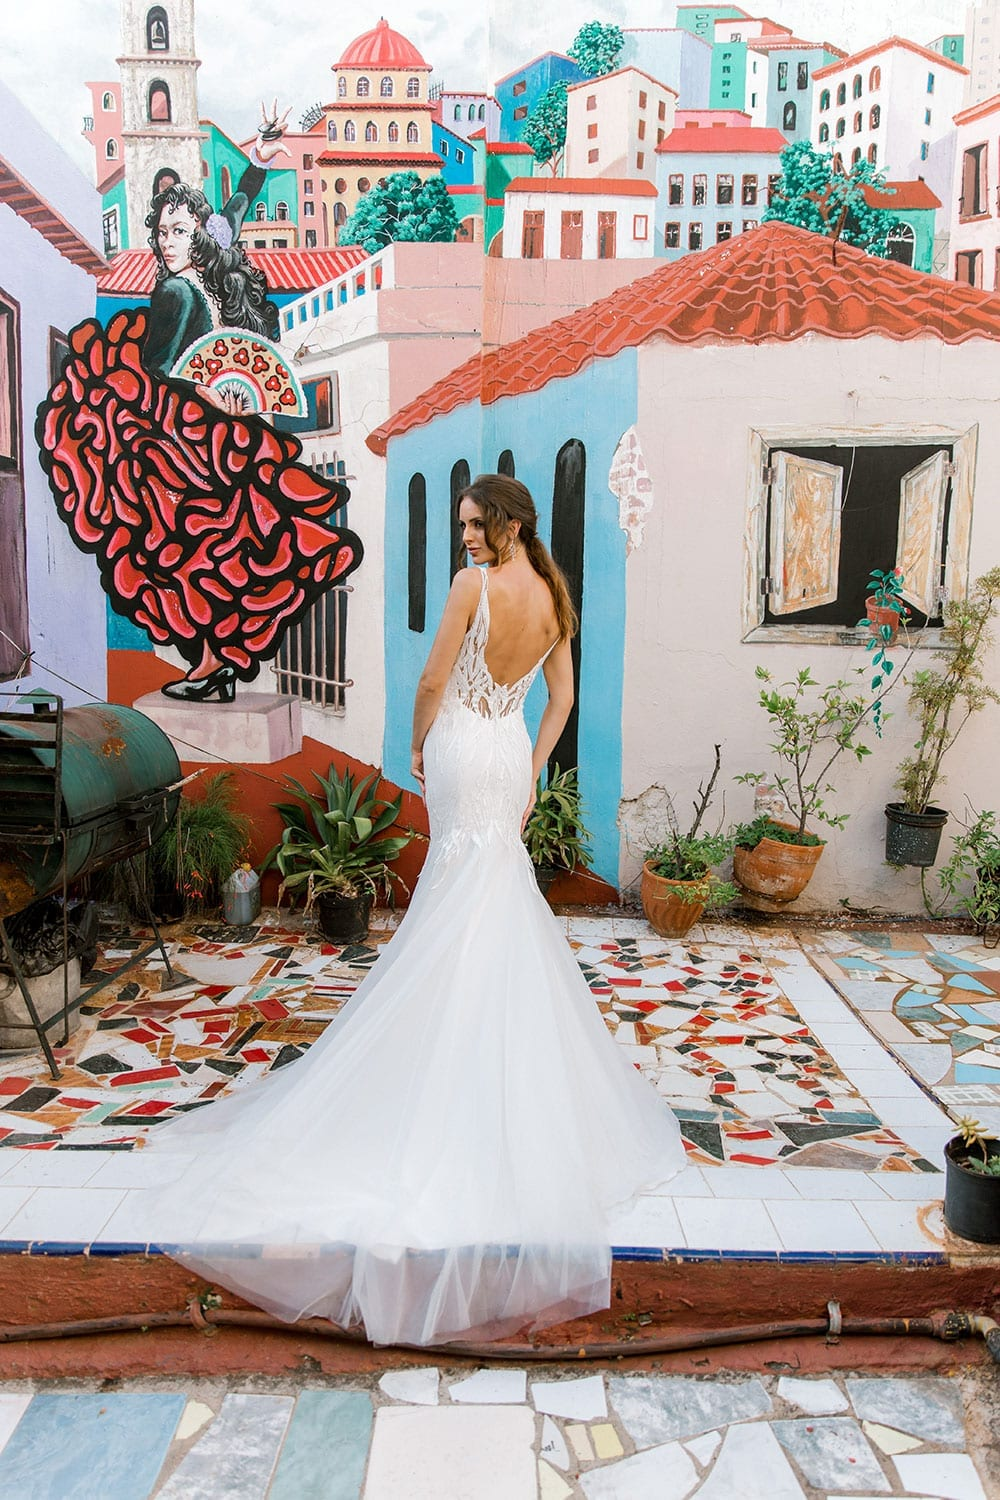 Model wearing Vinka Design Irina Wedding Dress, a n Embroidered Mermaid Lace Wedding Gown in front of colourful mural in Havana facing away to show back of dress